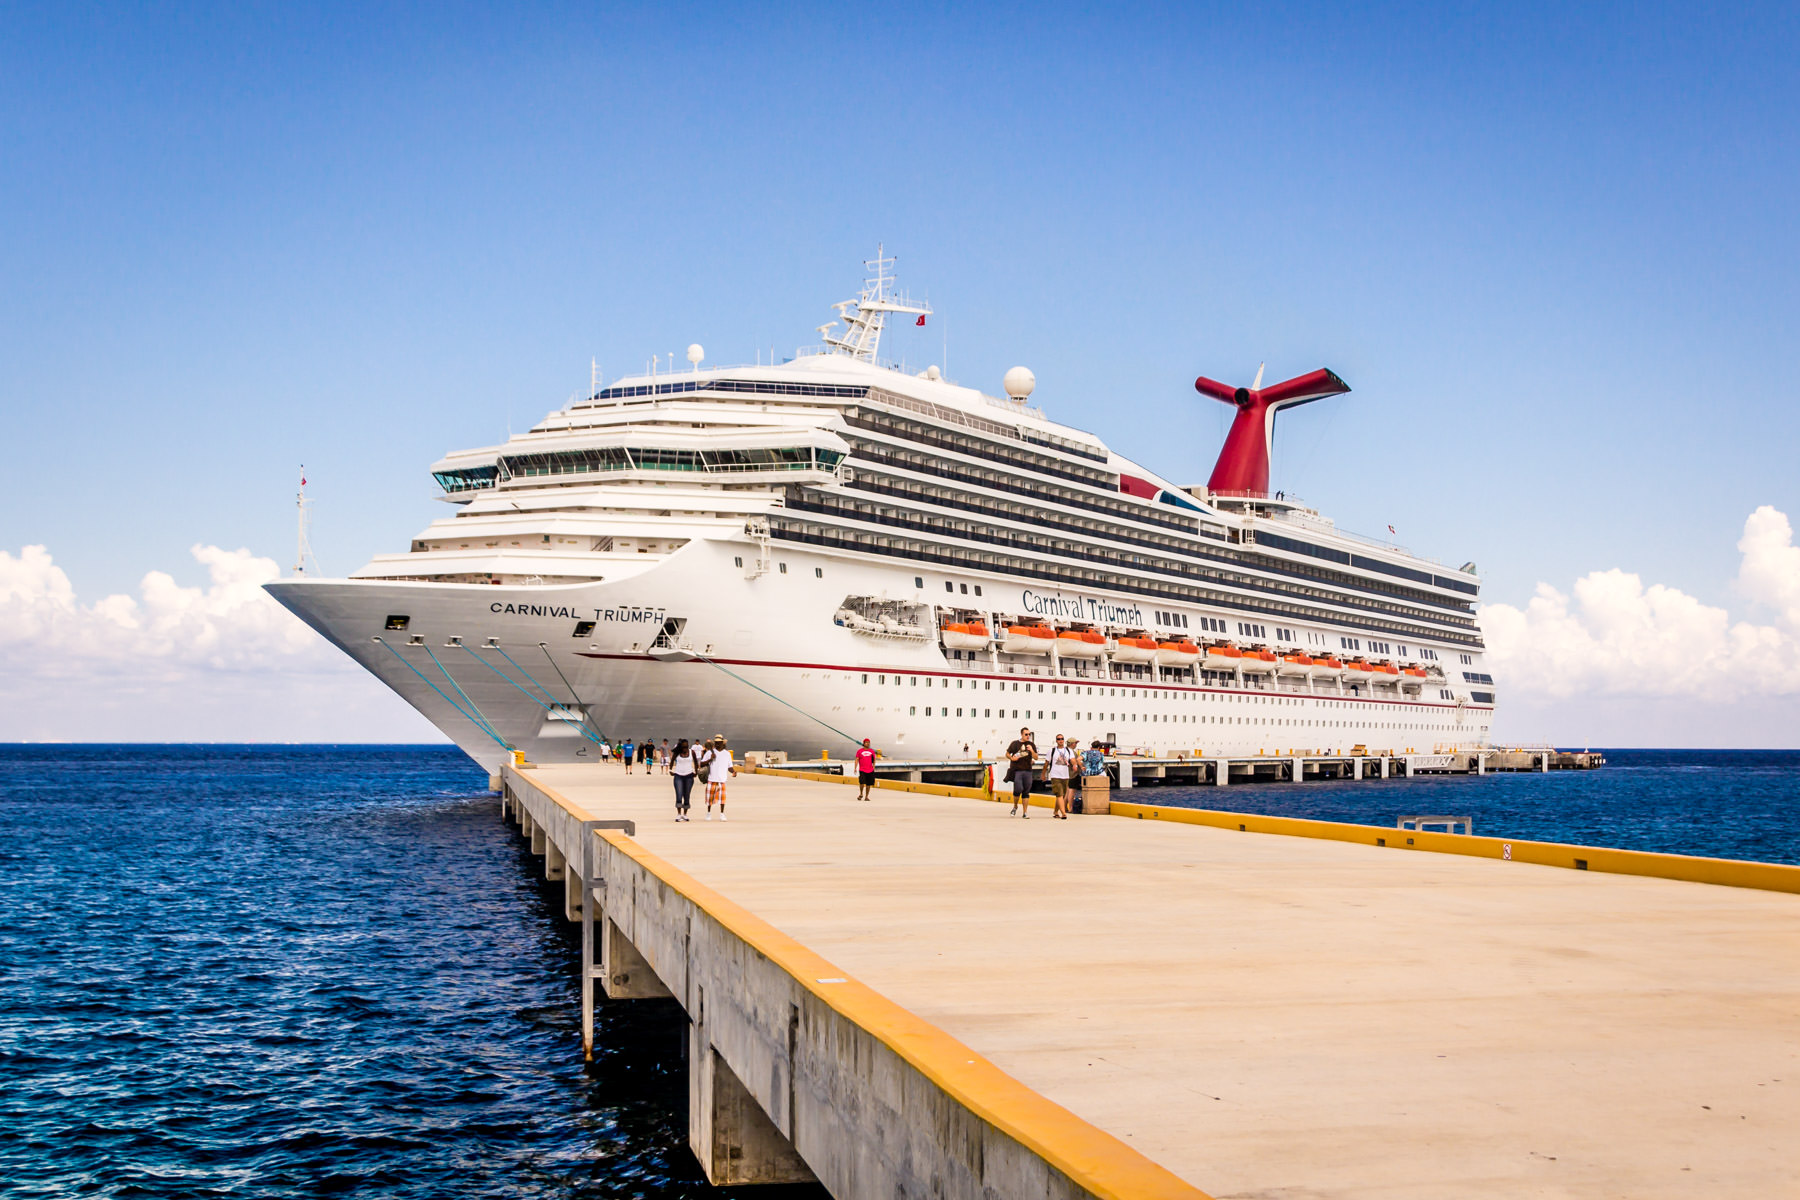 The Carnival Triumph, docked at the cruise port in Cozumel, Mexico.